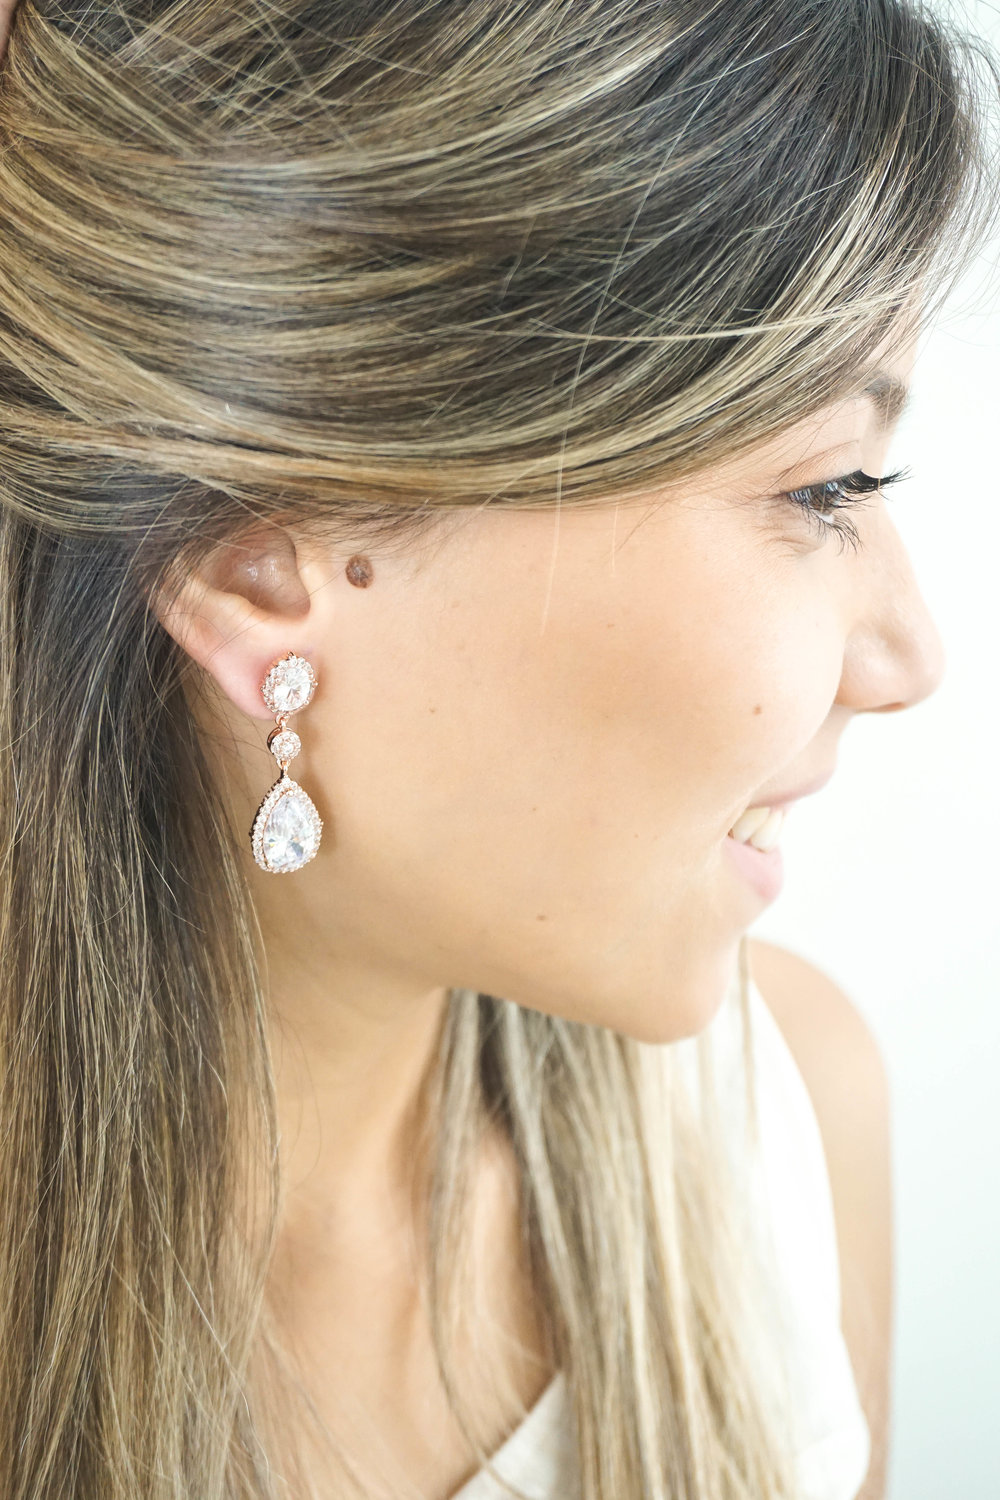 Bridal-Earrings-Photoshoot-with-Wink-of-Pink-Shop-Commercial-Photography-Bridal-Jewelry6.jpg